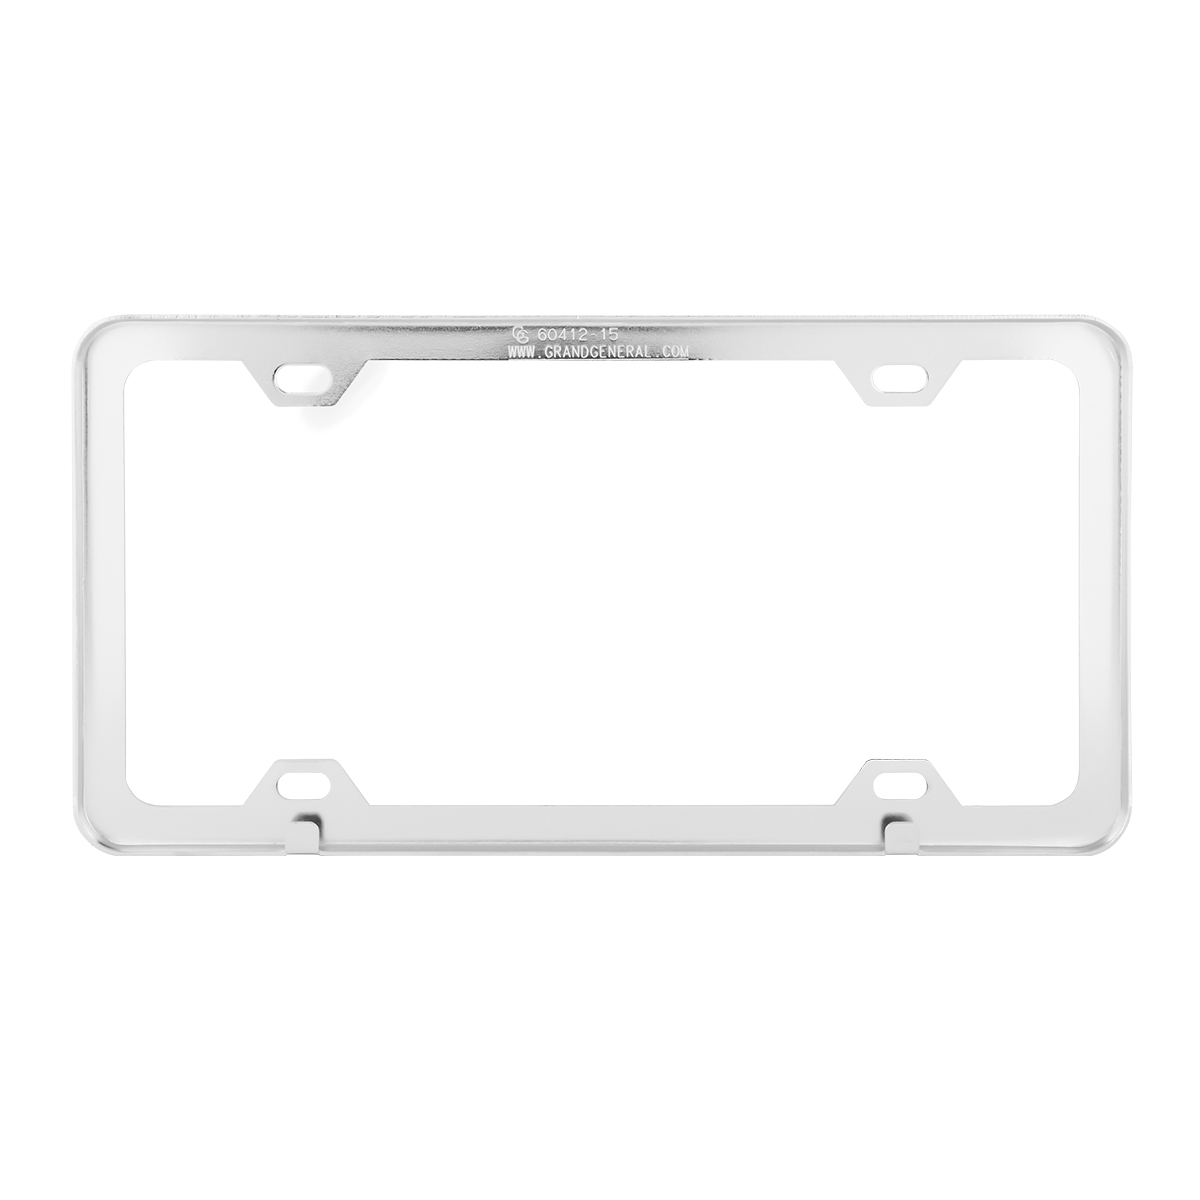 60412 Plain Chrome Plated 4 Hole License Plate Frame - Back View